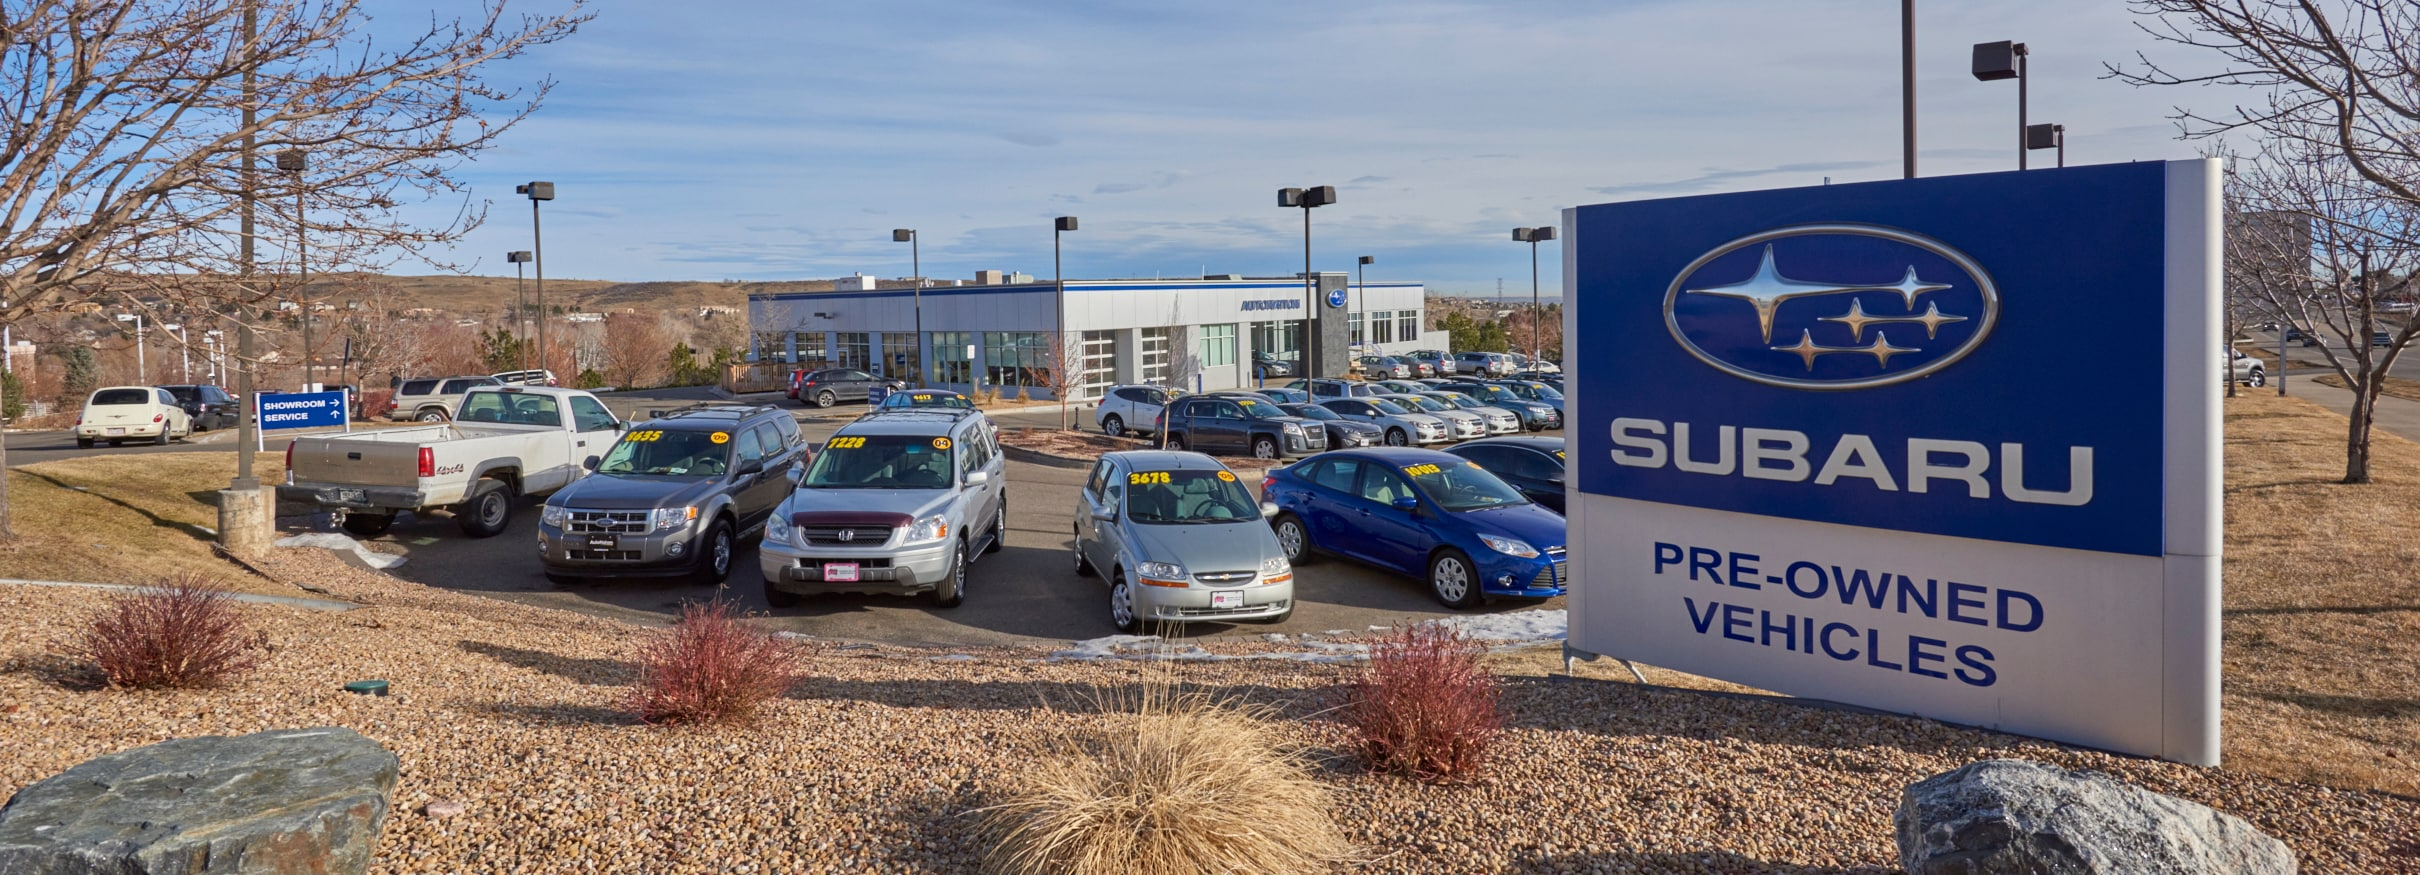 AutoNation Subaru West Dealer